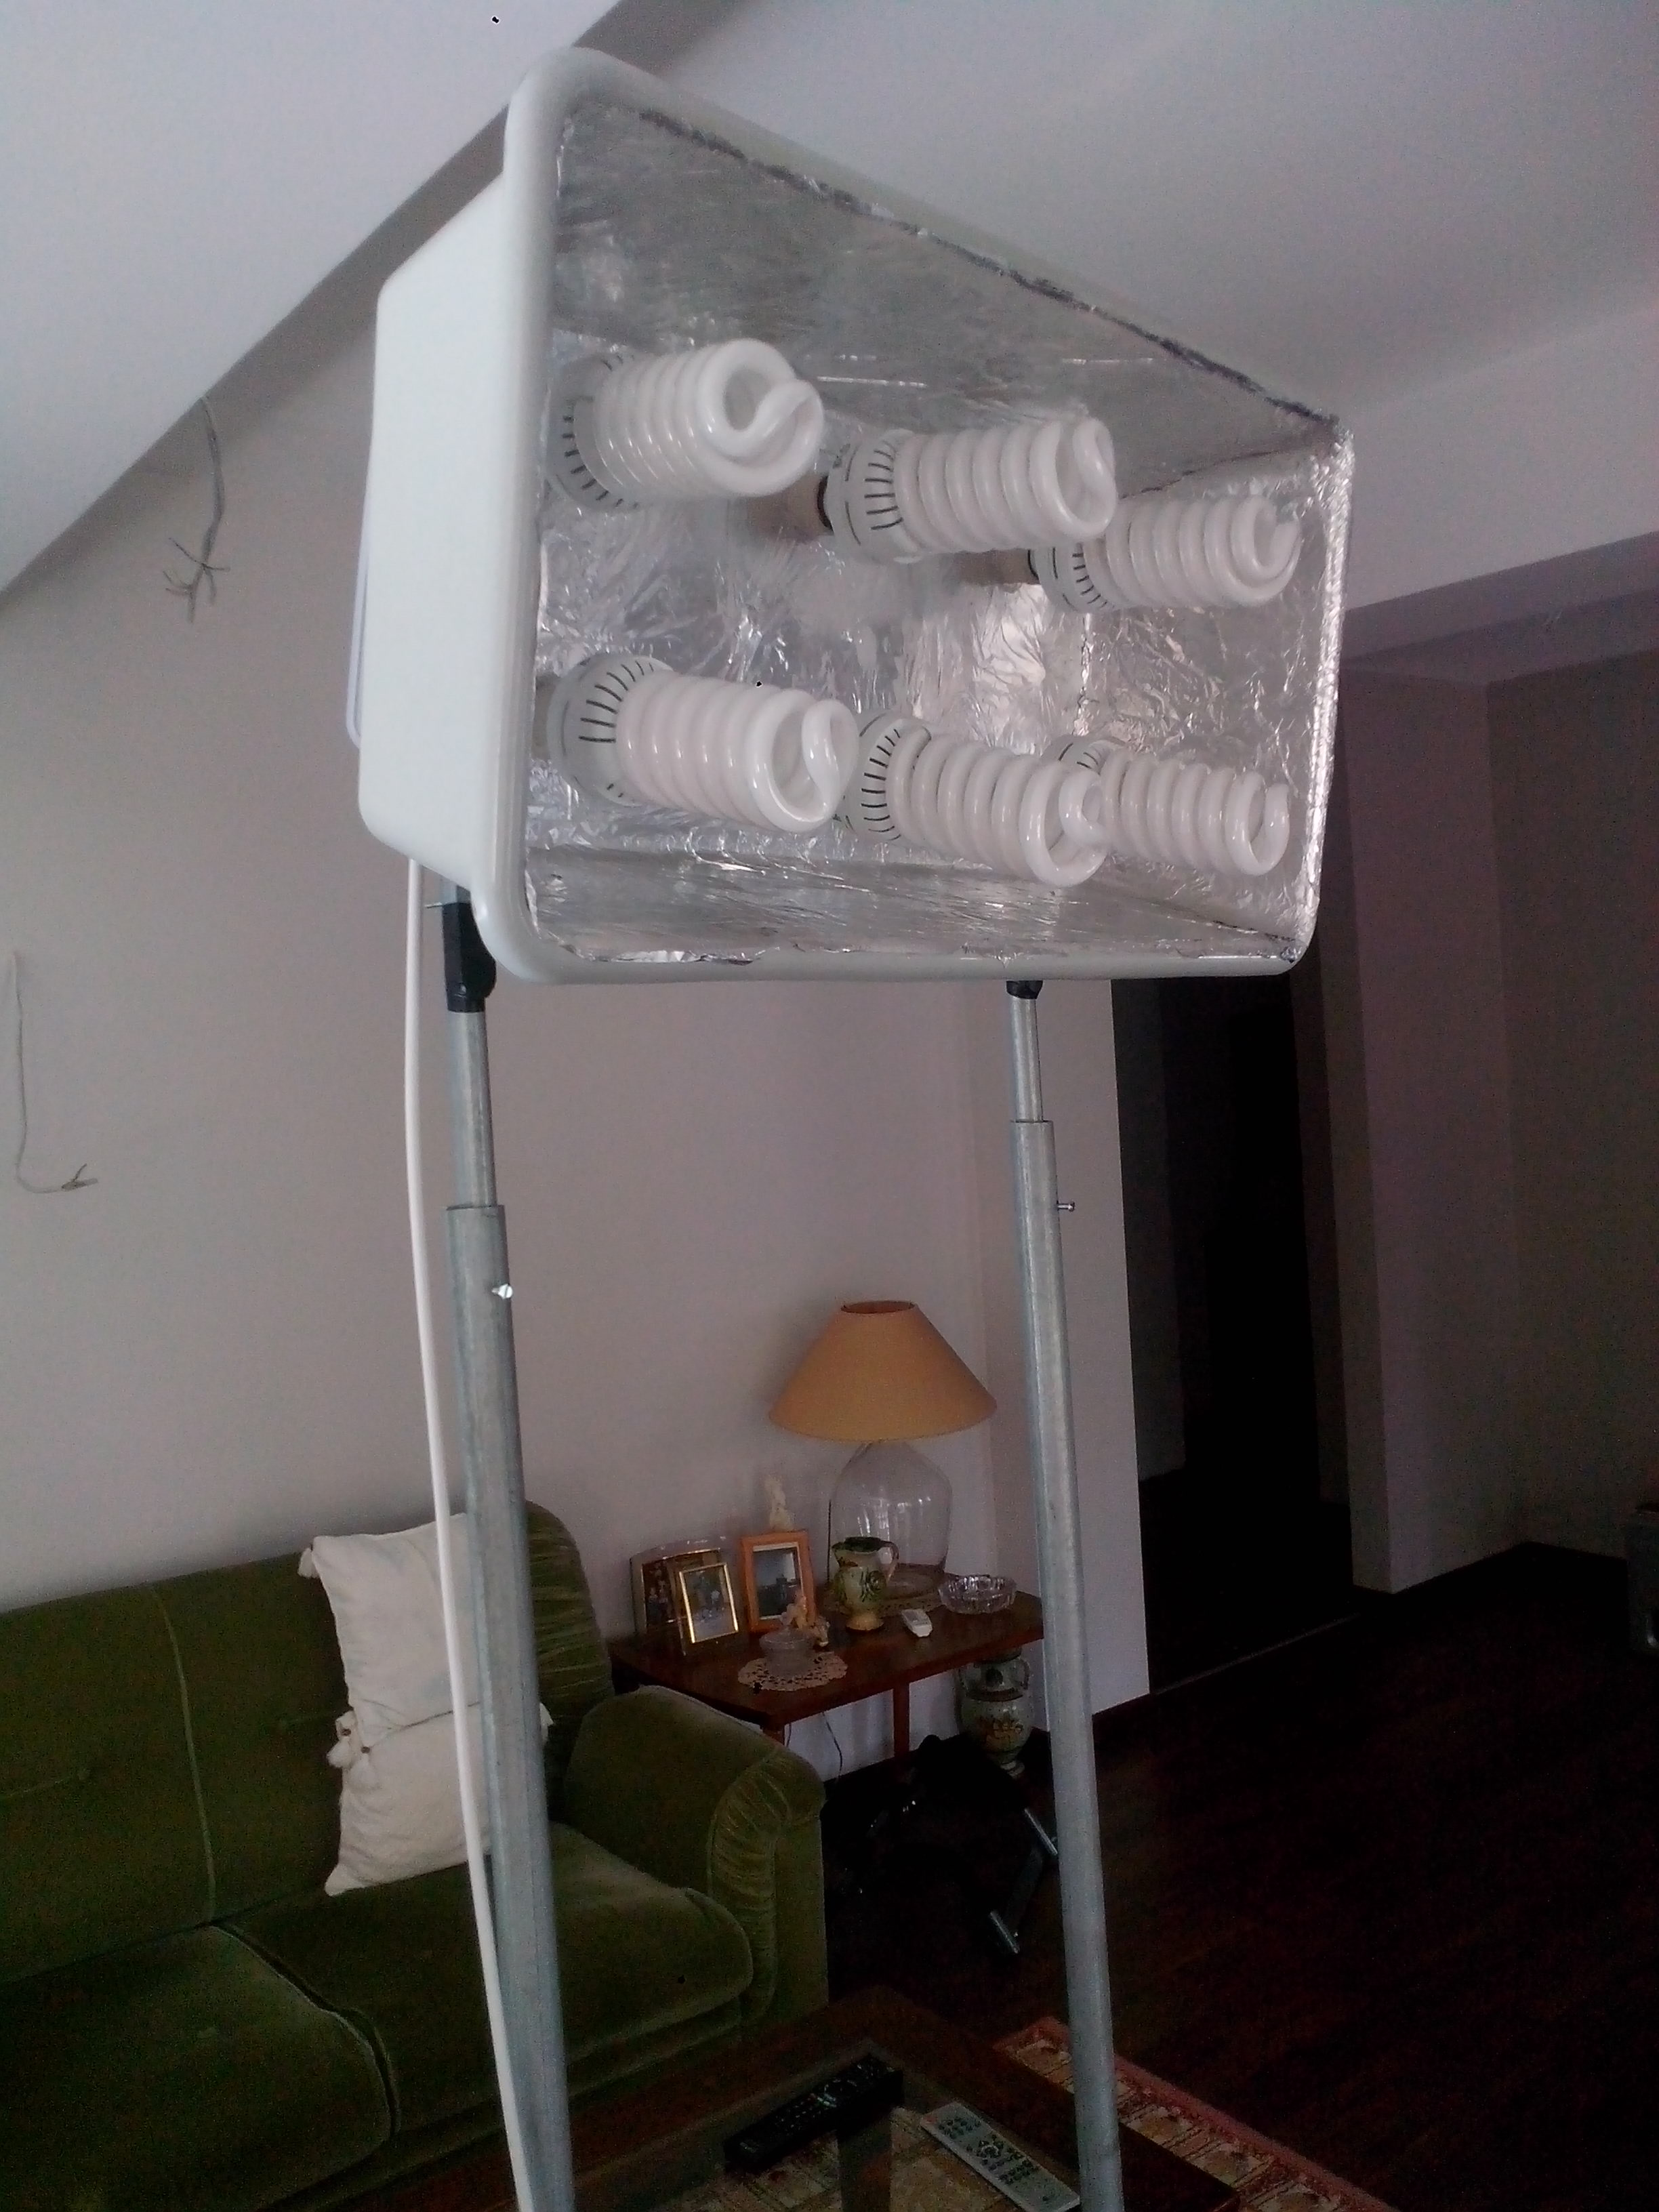 Picture of 3 Point Lighting Setup